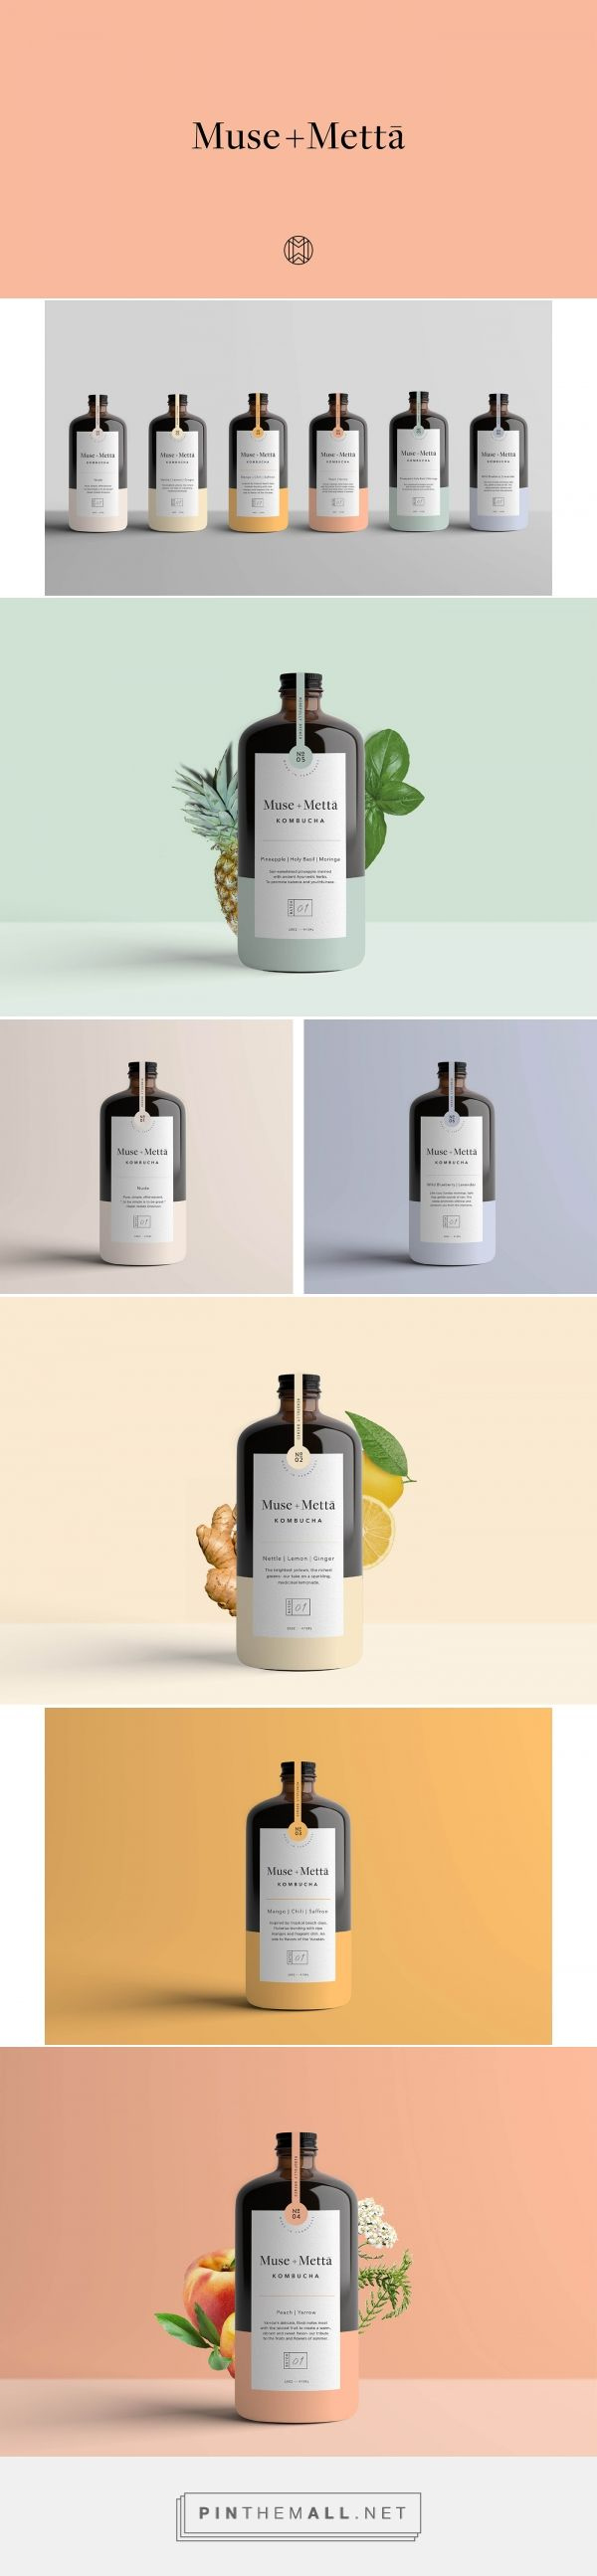 Muse + Metta Kombucha Tea Packaging by Kati Forner | Fivestar Branding Agency – Design and Branding Agency & Curated Inspiration Gallery